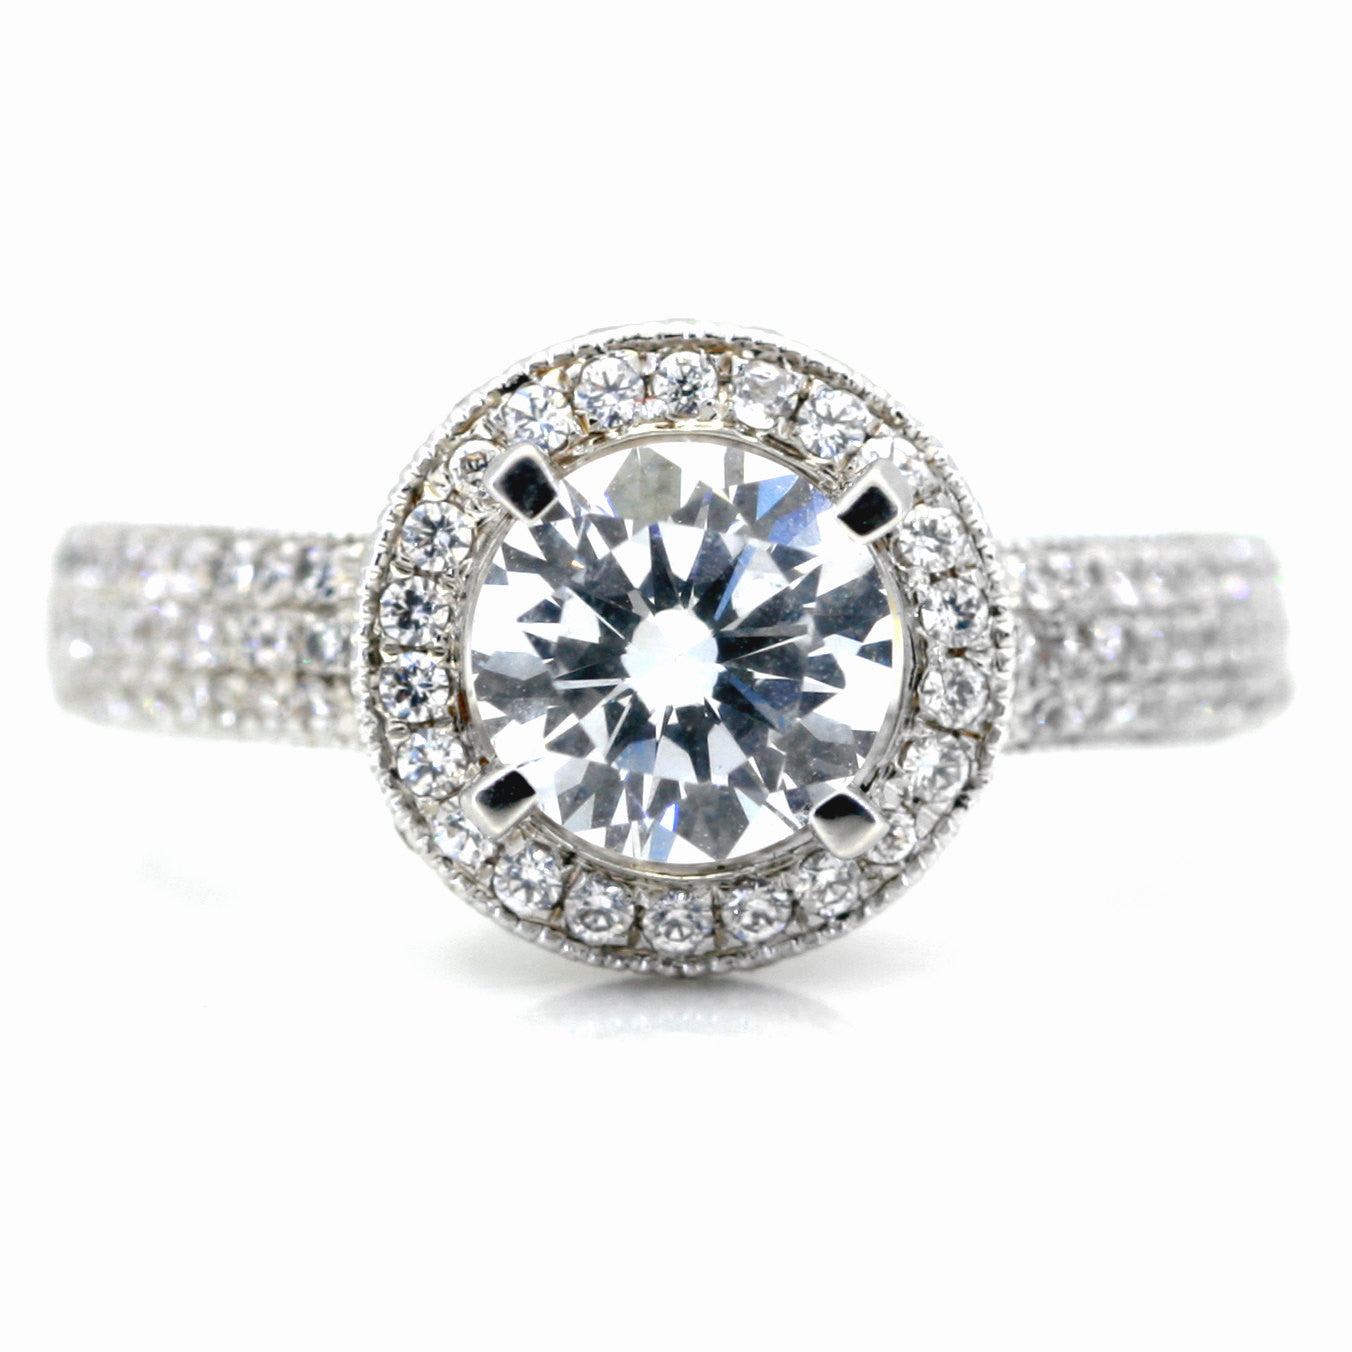 1 Carat Forever Brilliant Moissanite & .45 Carat Diamonds, Unique Floating Halo Engagement Ring, Anniversary Ring - FB85030